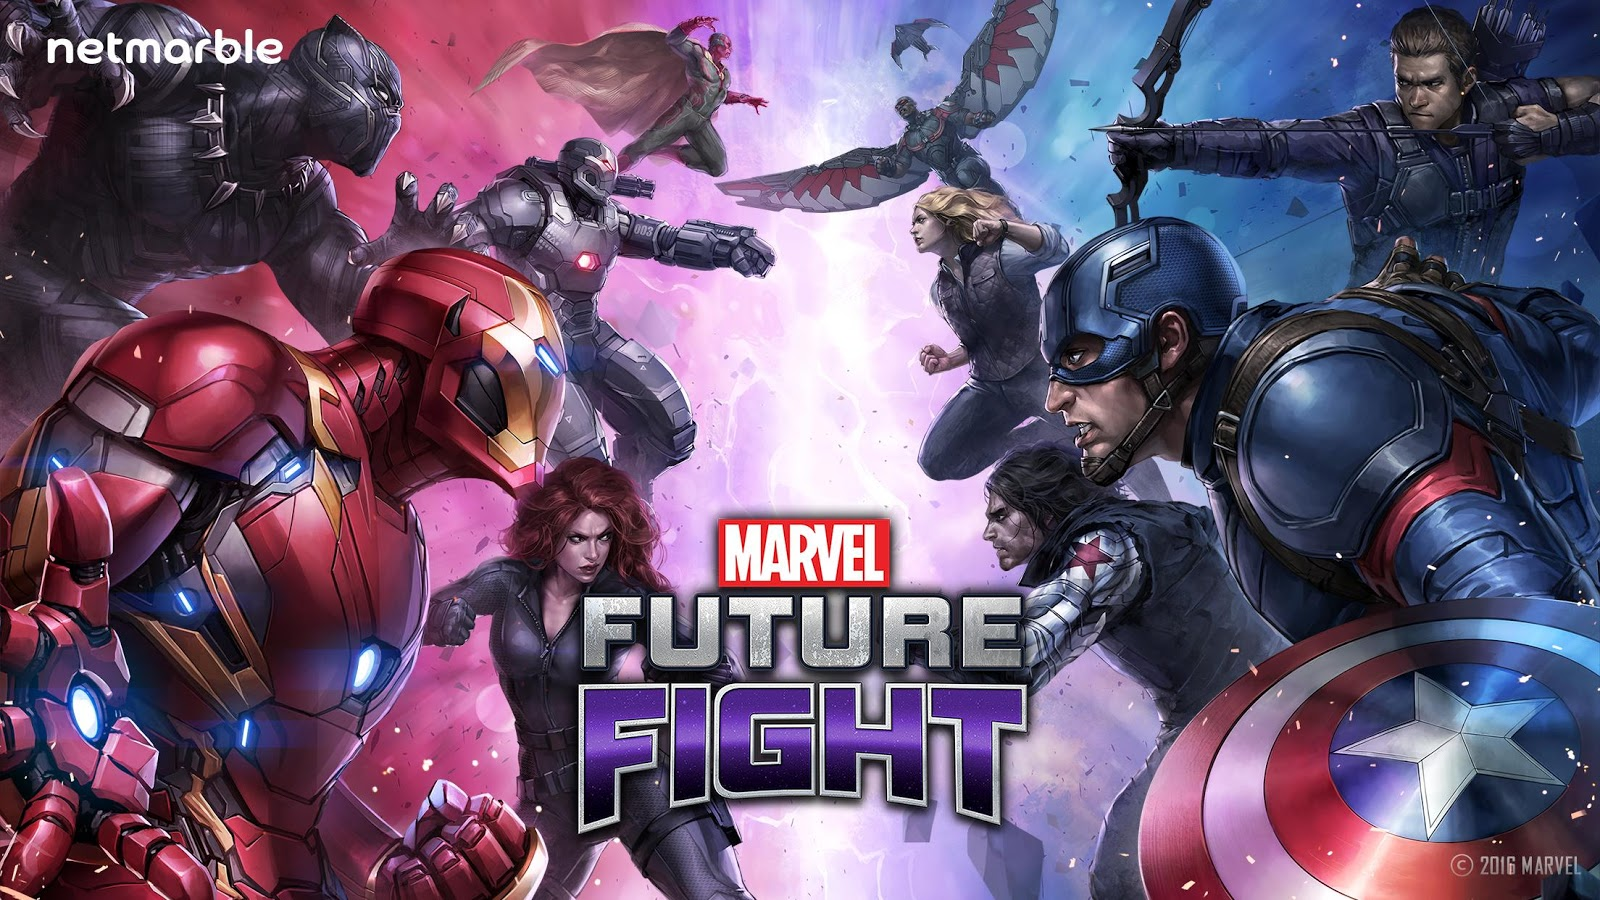 Marvel-Future-Fight-civil-war